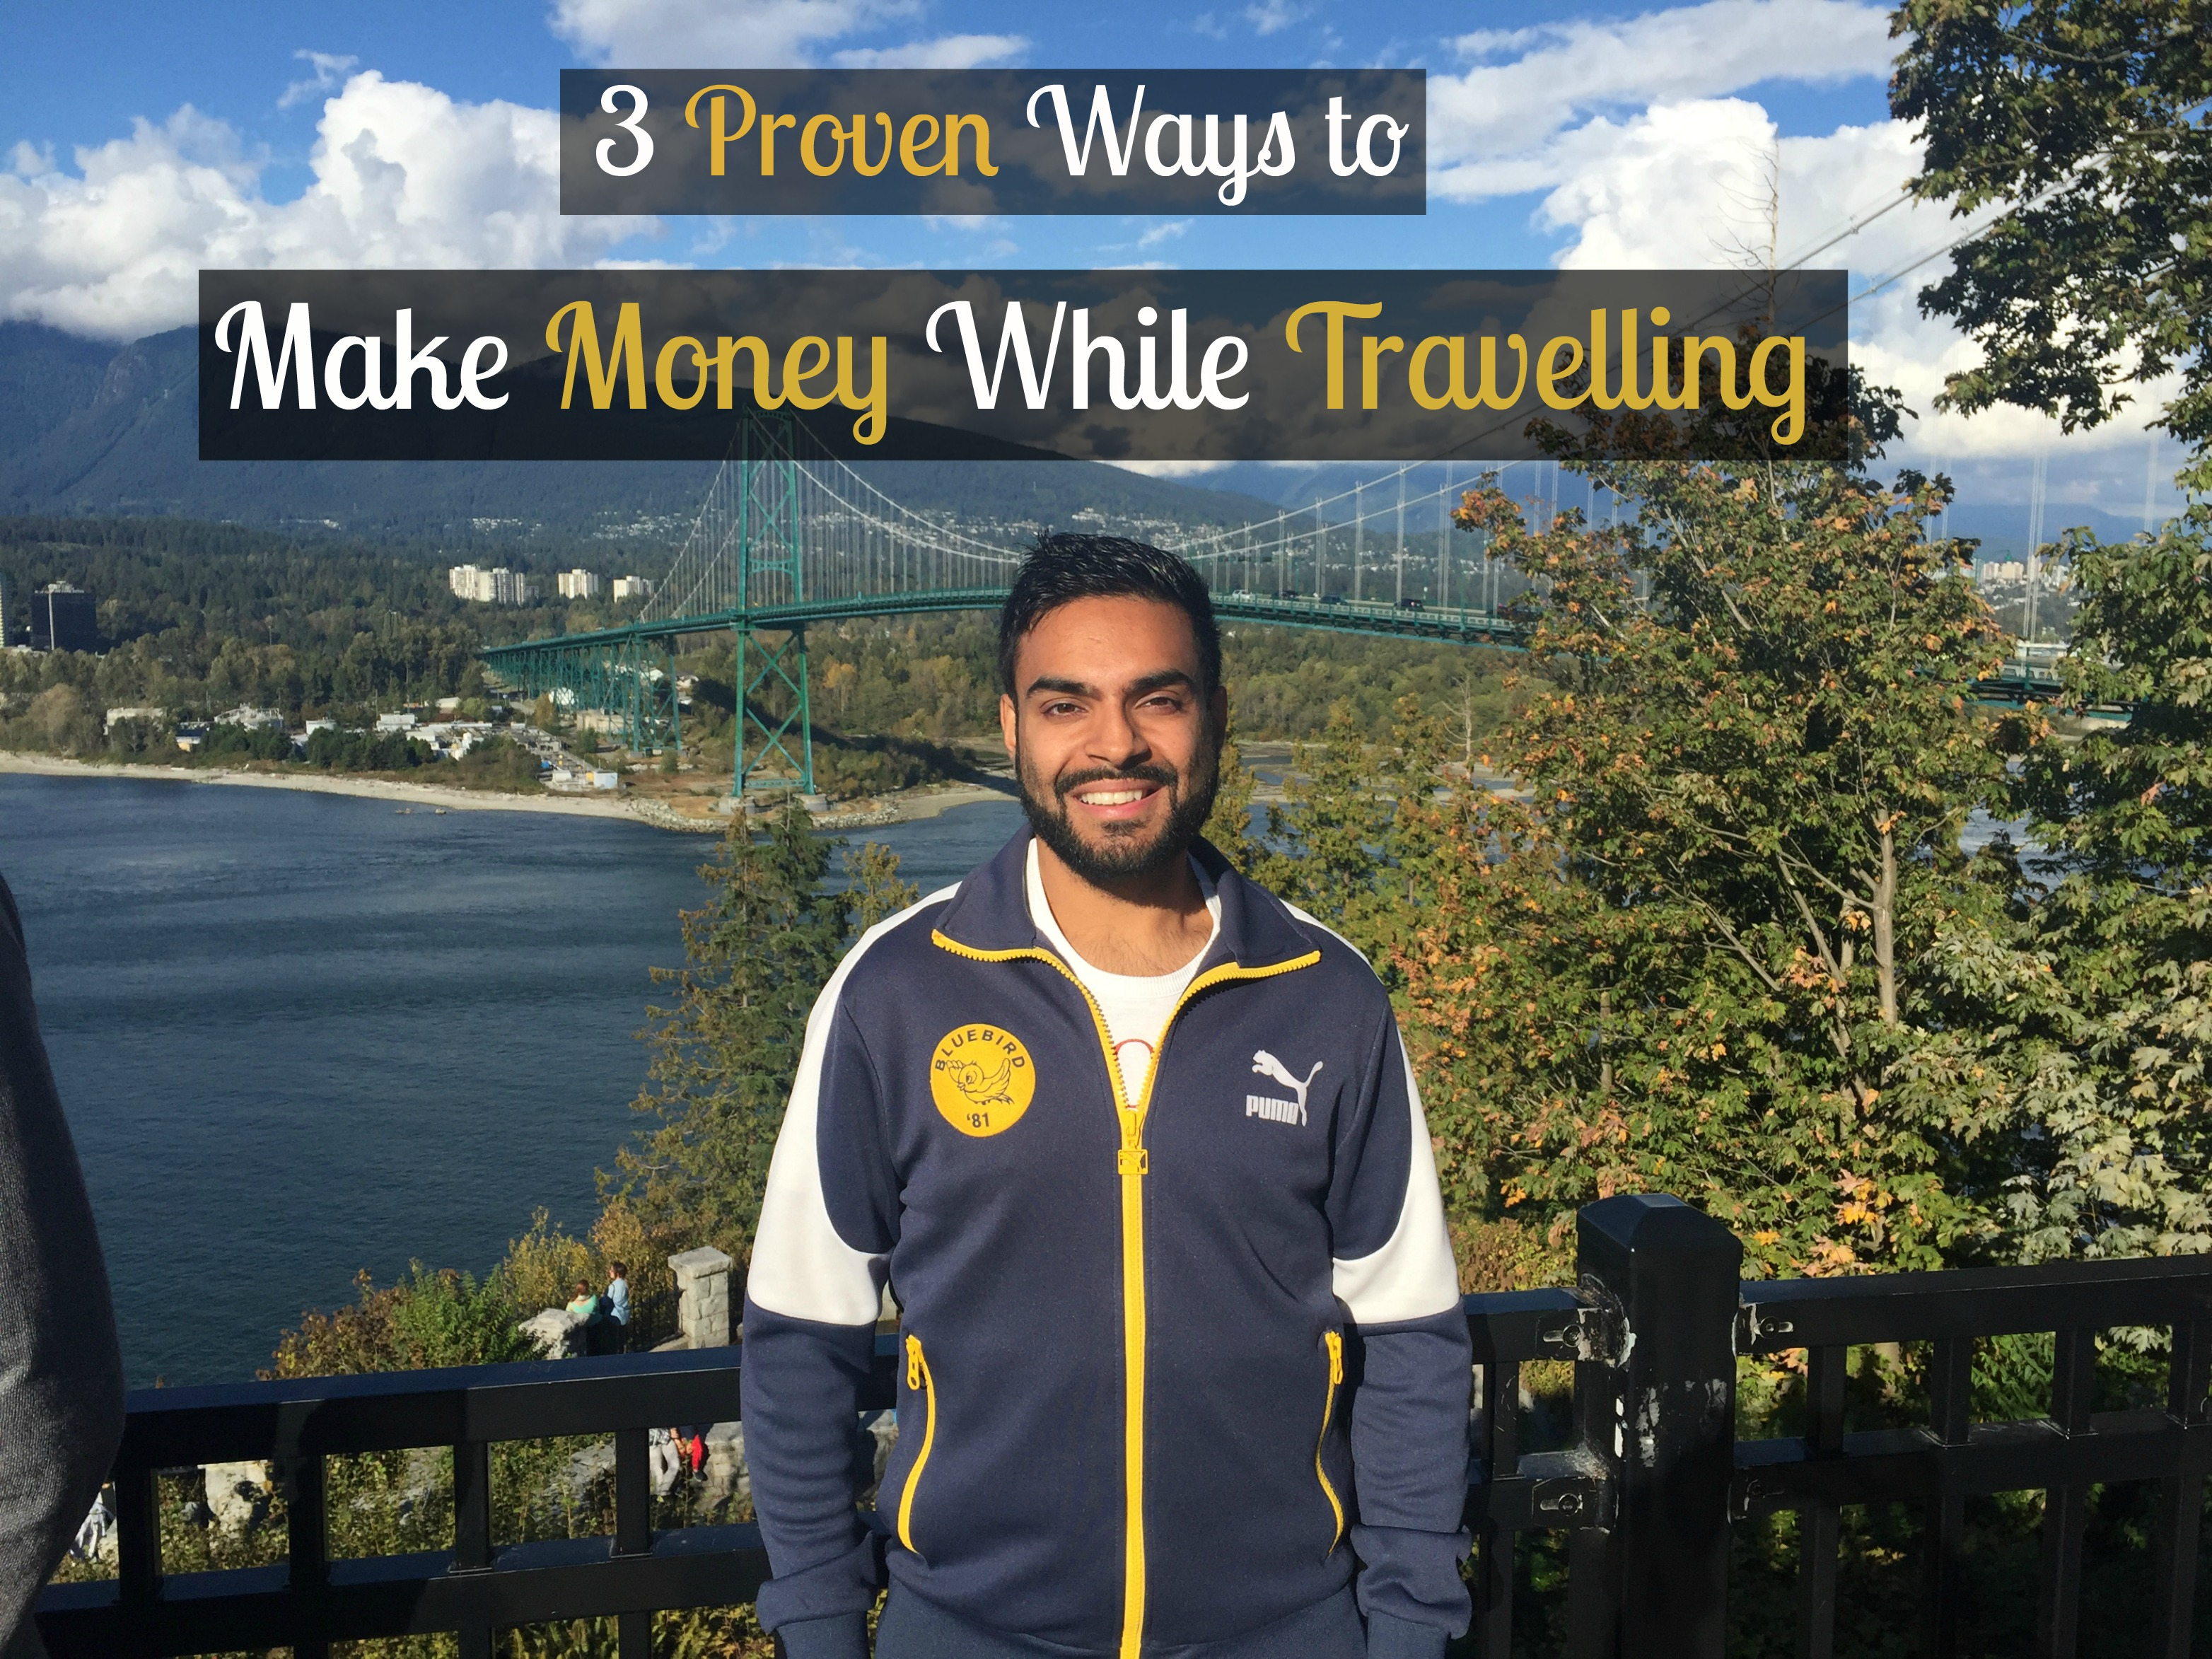 3 Proven Ways to Make Money While Travelling…